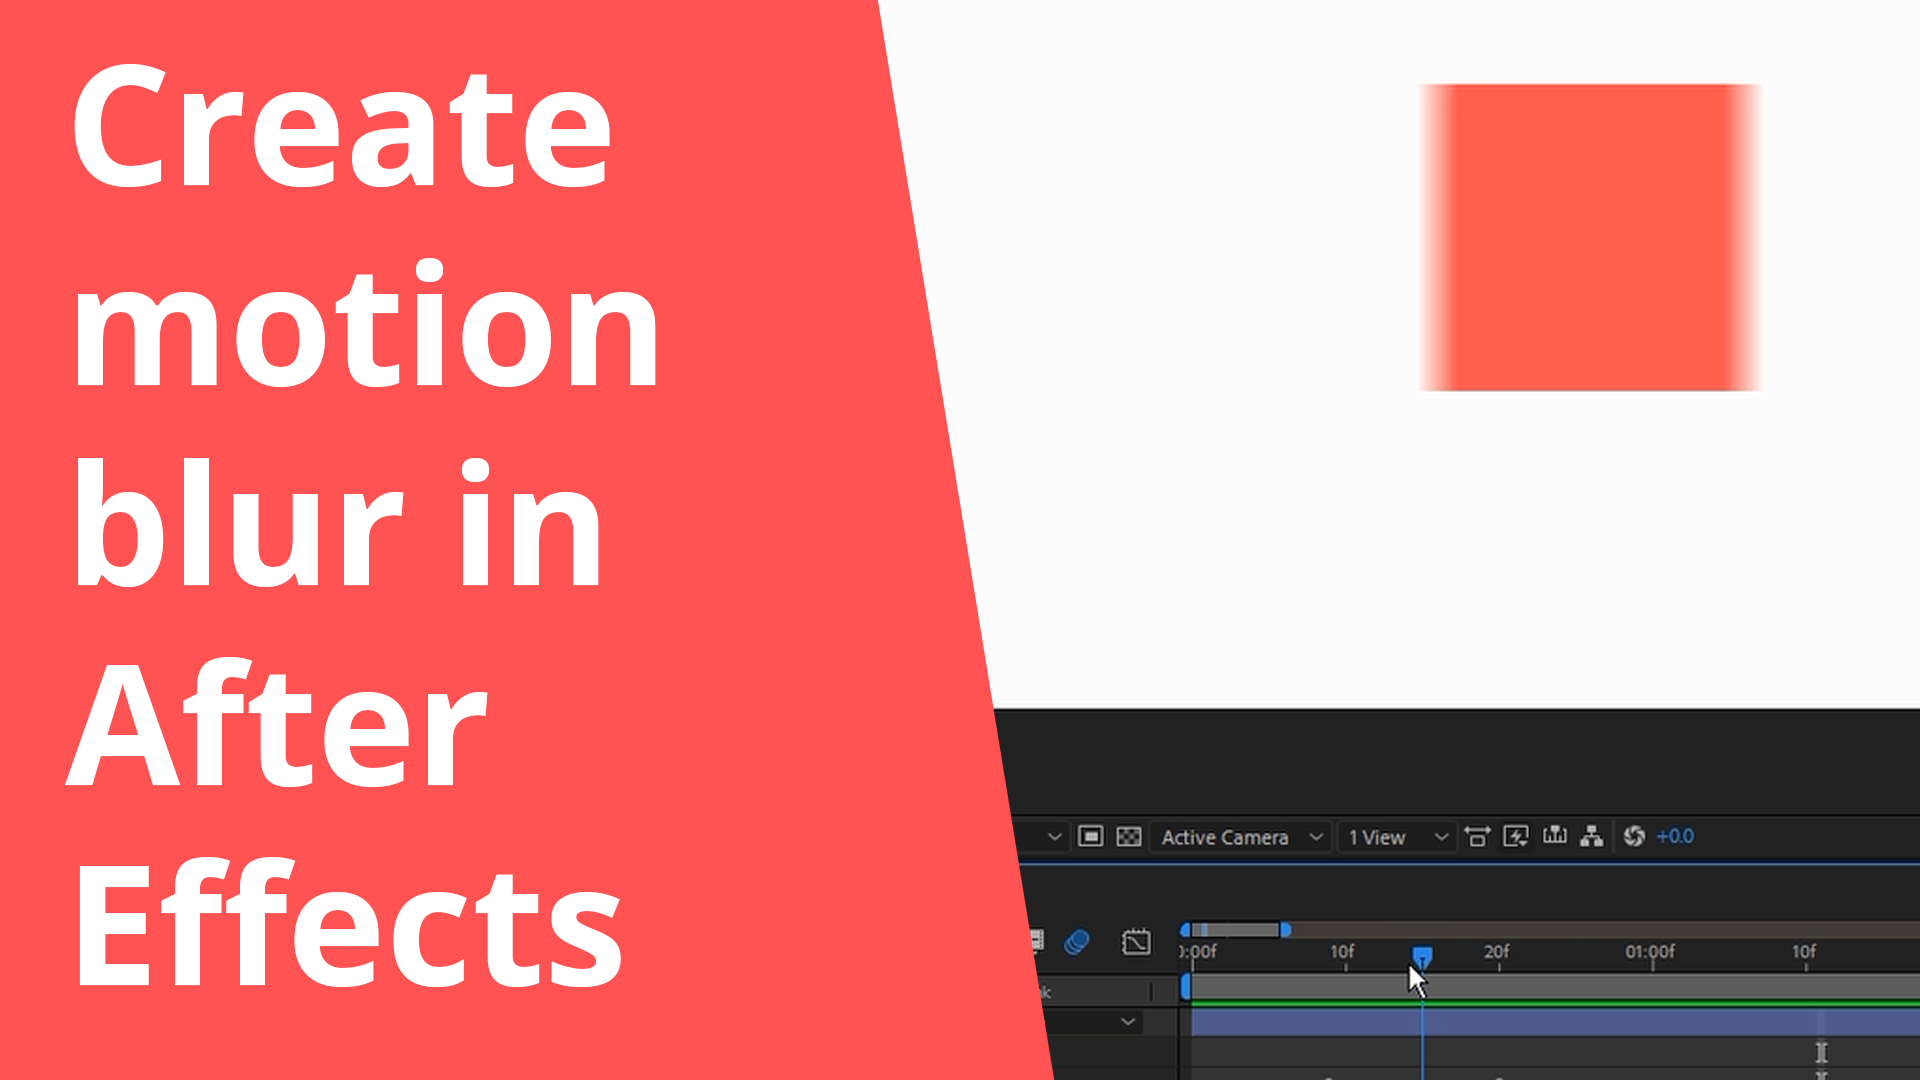 Create motion blur in After Effects